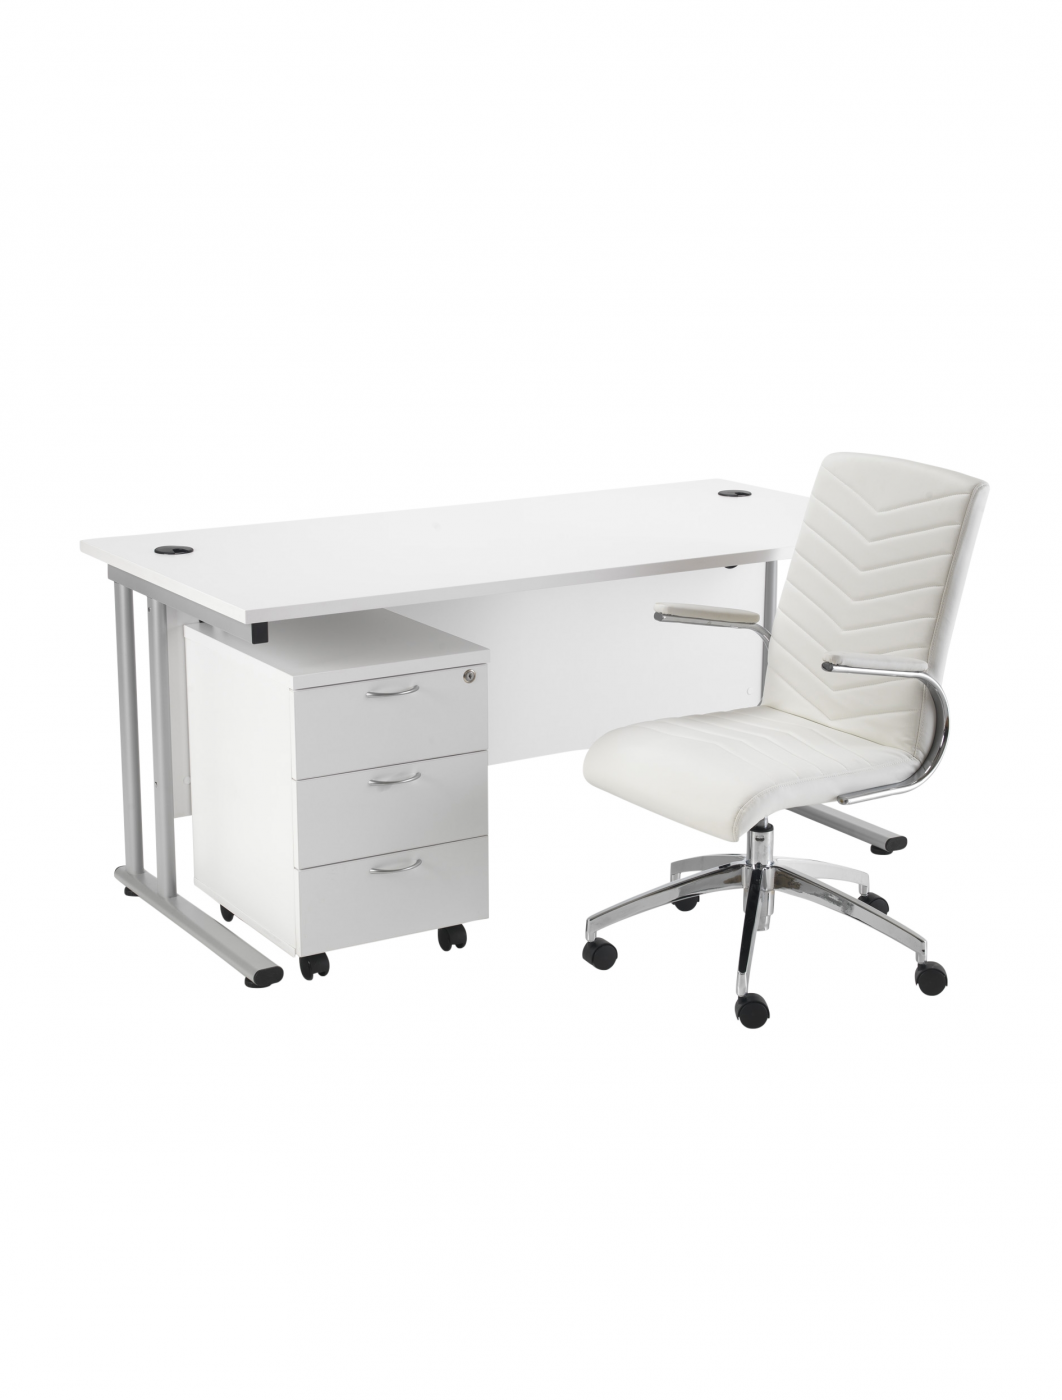 Lite 1600mm office desk 3 drawer mobile pedestal and baresi executive chair bundle special